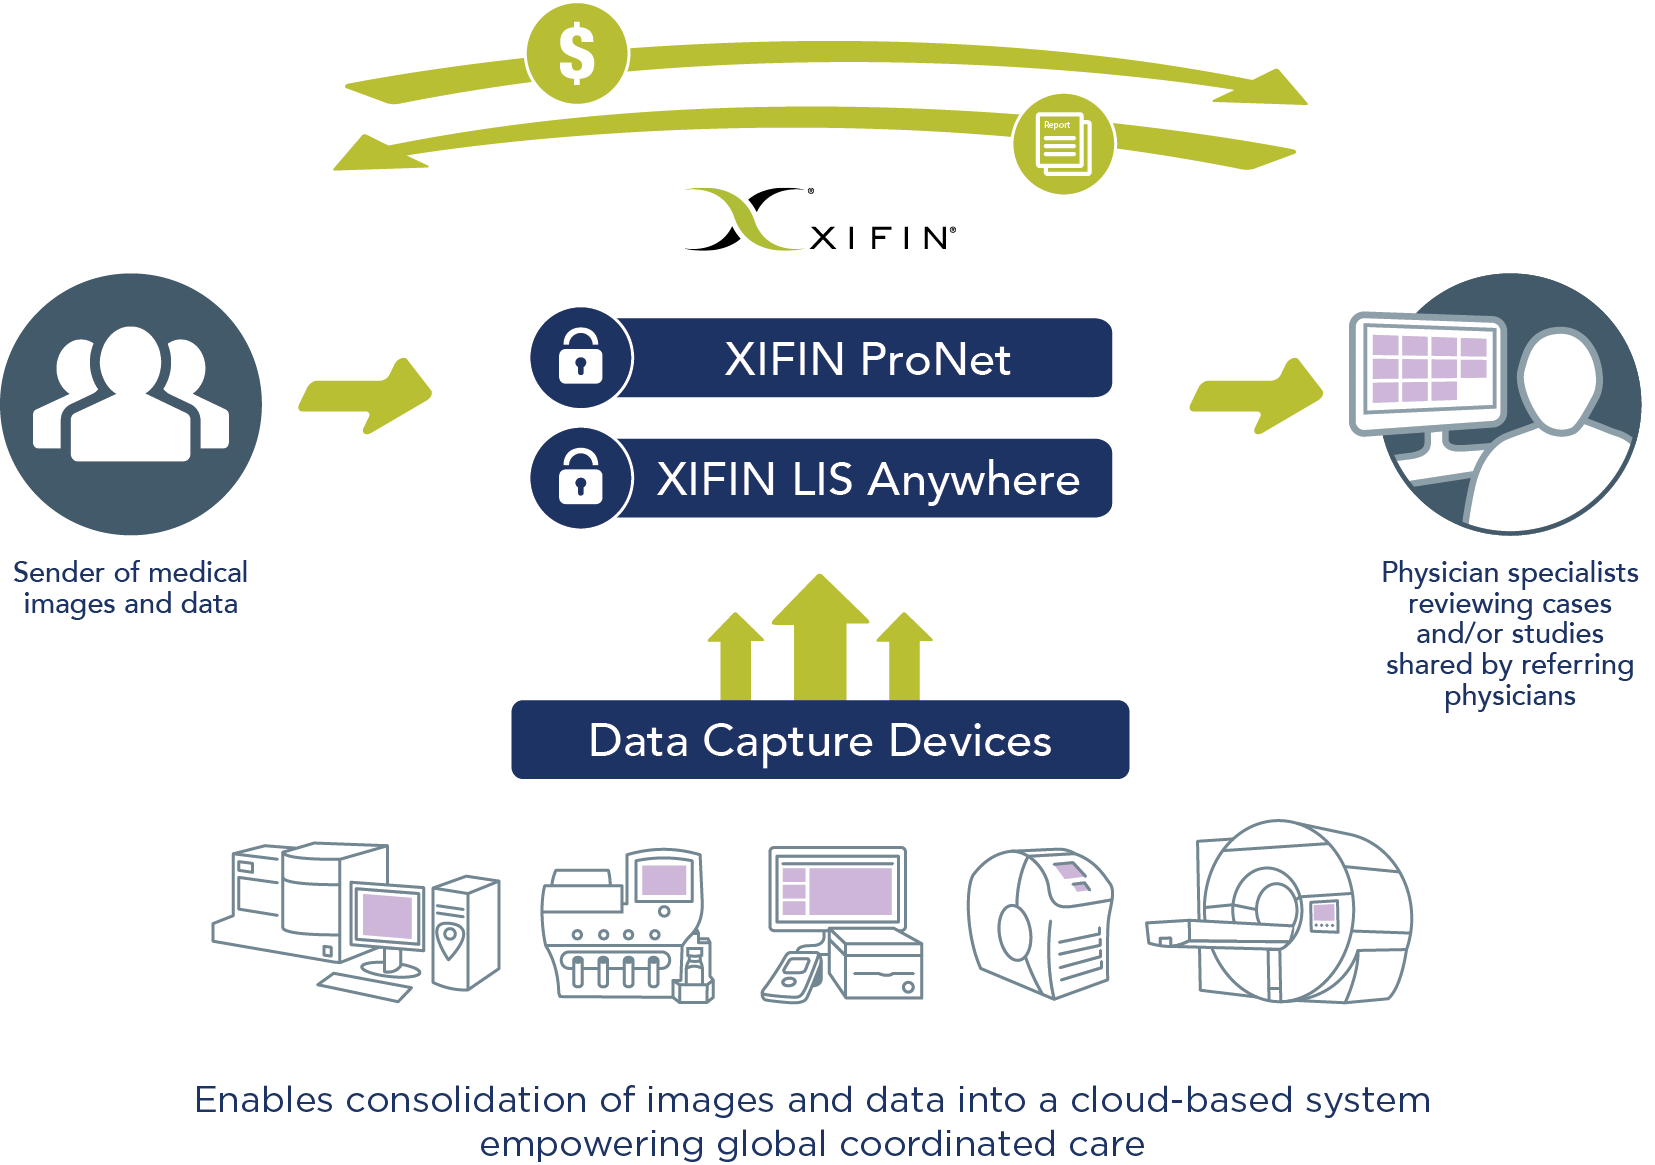 XIFIN ProNet enables consolidation of images and data into a cloud-based system empowering global coordinated care